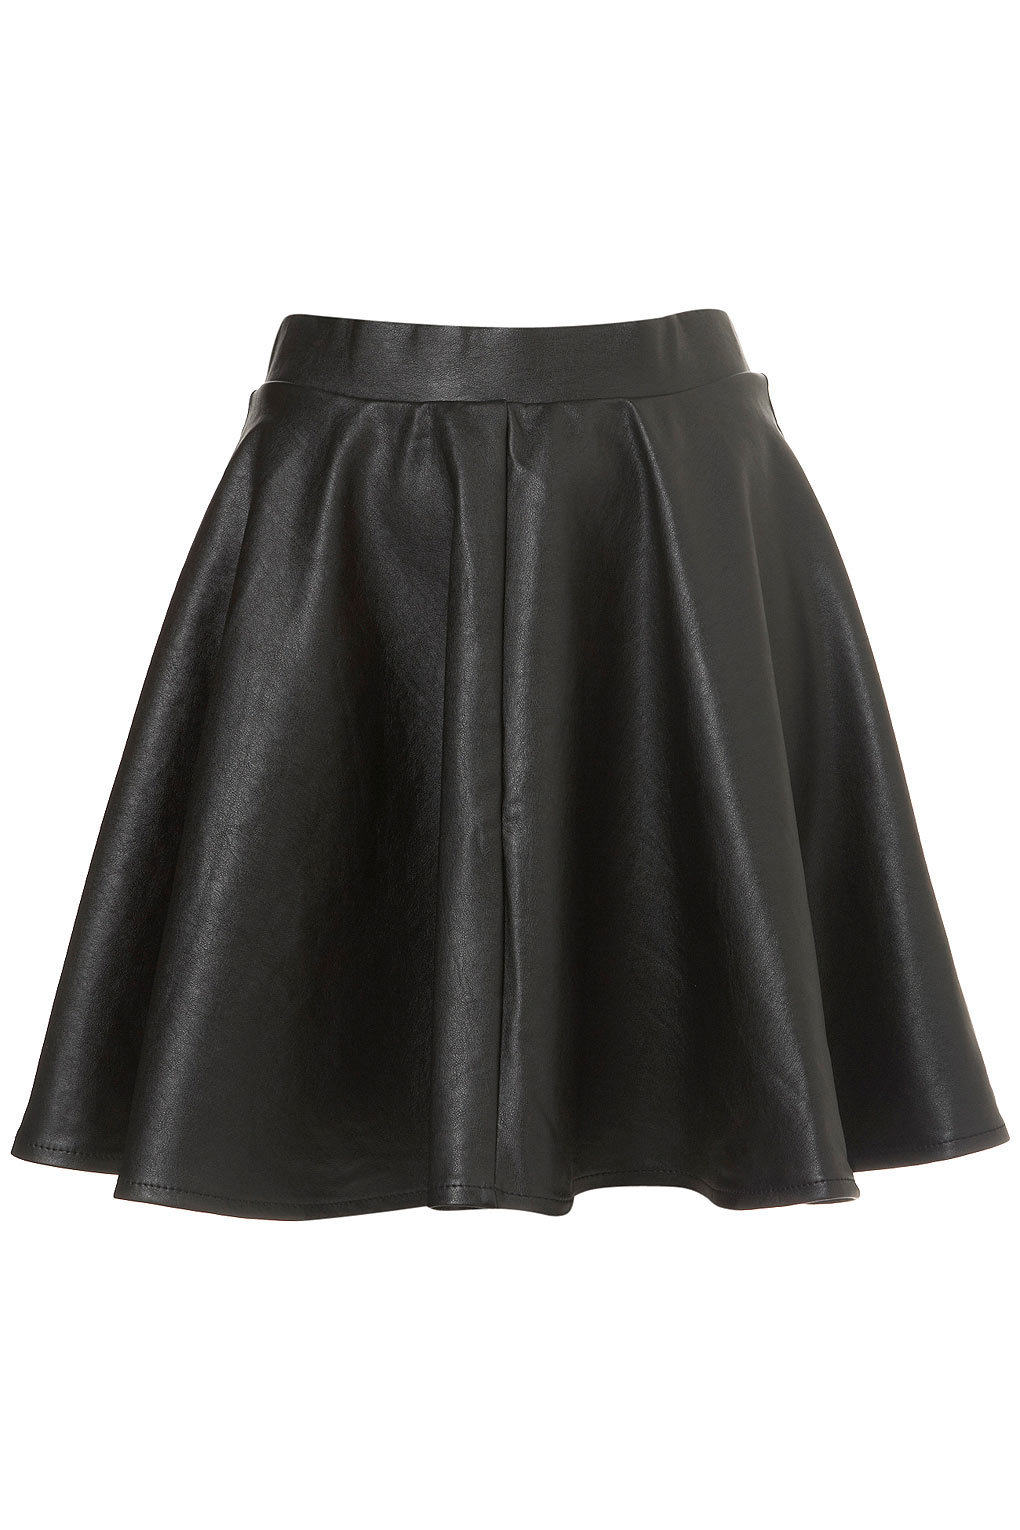 A faux suede mini skirt featuring a high-waist, QUICK VIEW WARNING: This product can expose you to chemicals, including lead and/or phthalates, which are known to the State of California to cause cancer and birth defects or other reproductive harm.